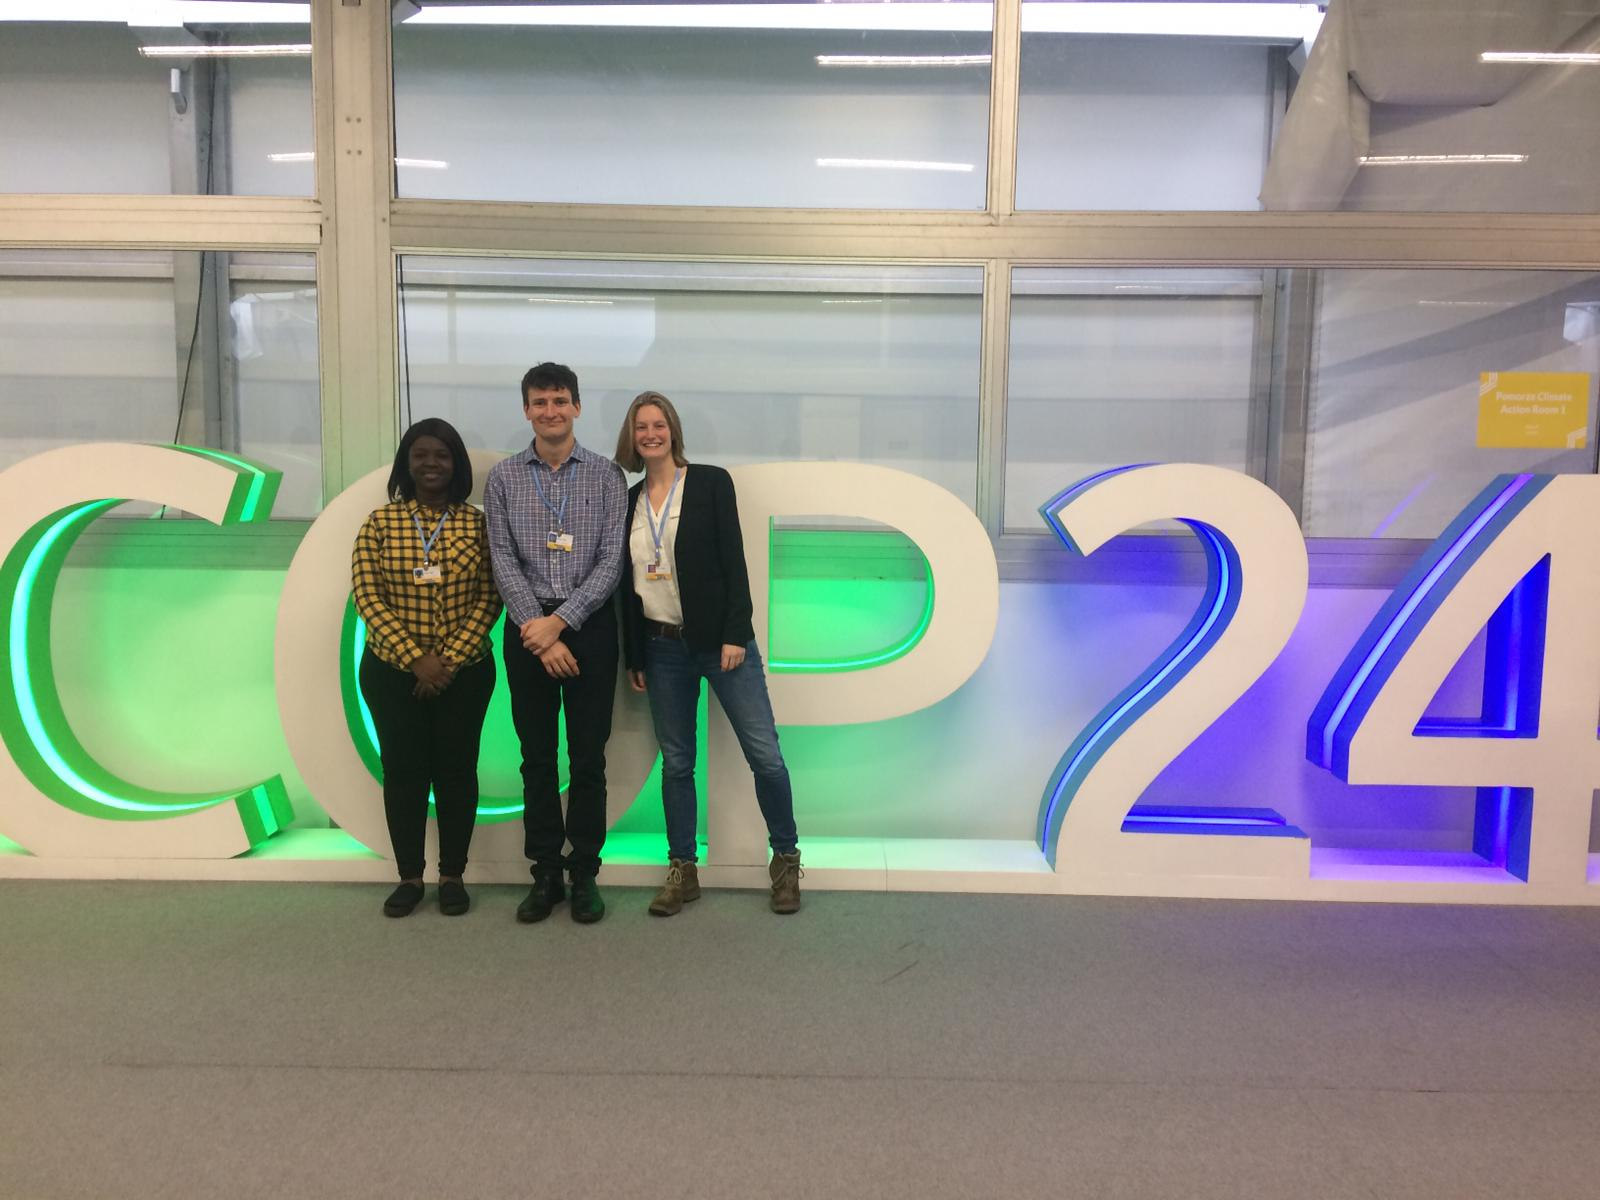 COP24 - some of the Grantham Scholars posing in front of the massive COP logo